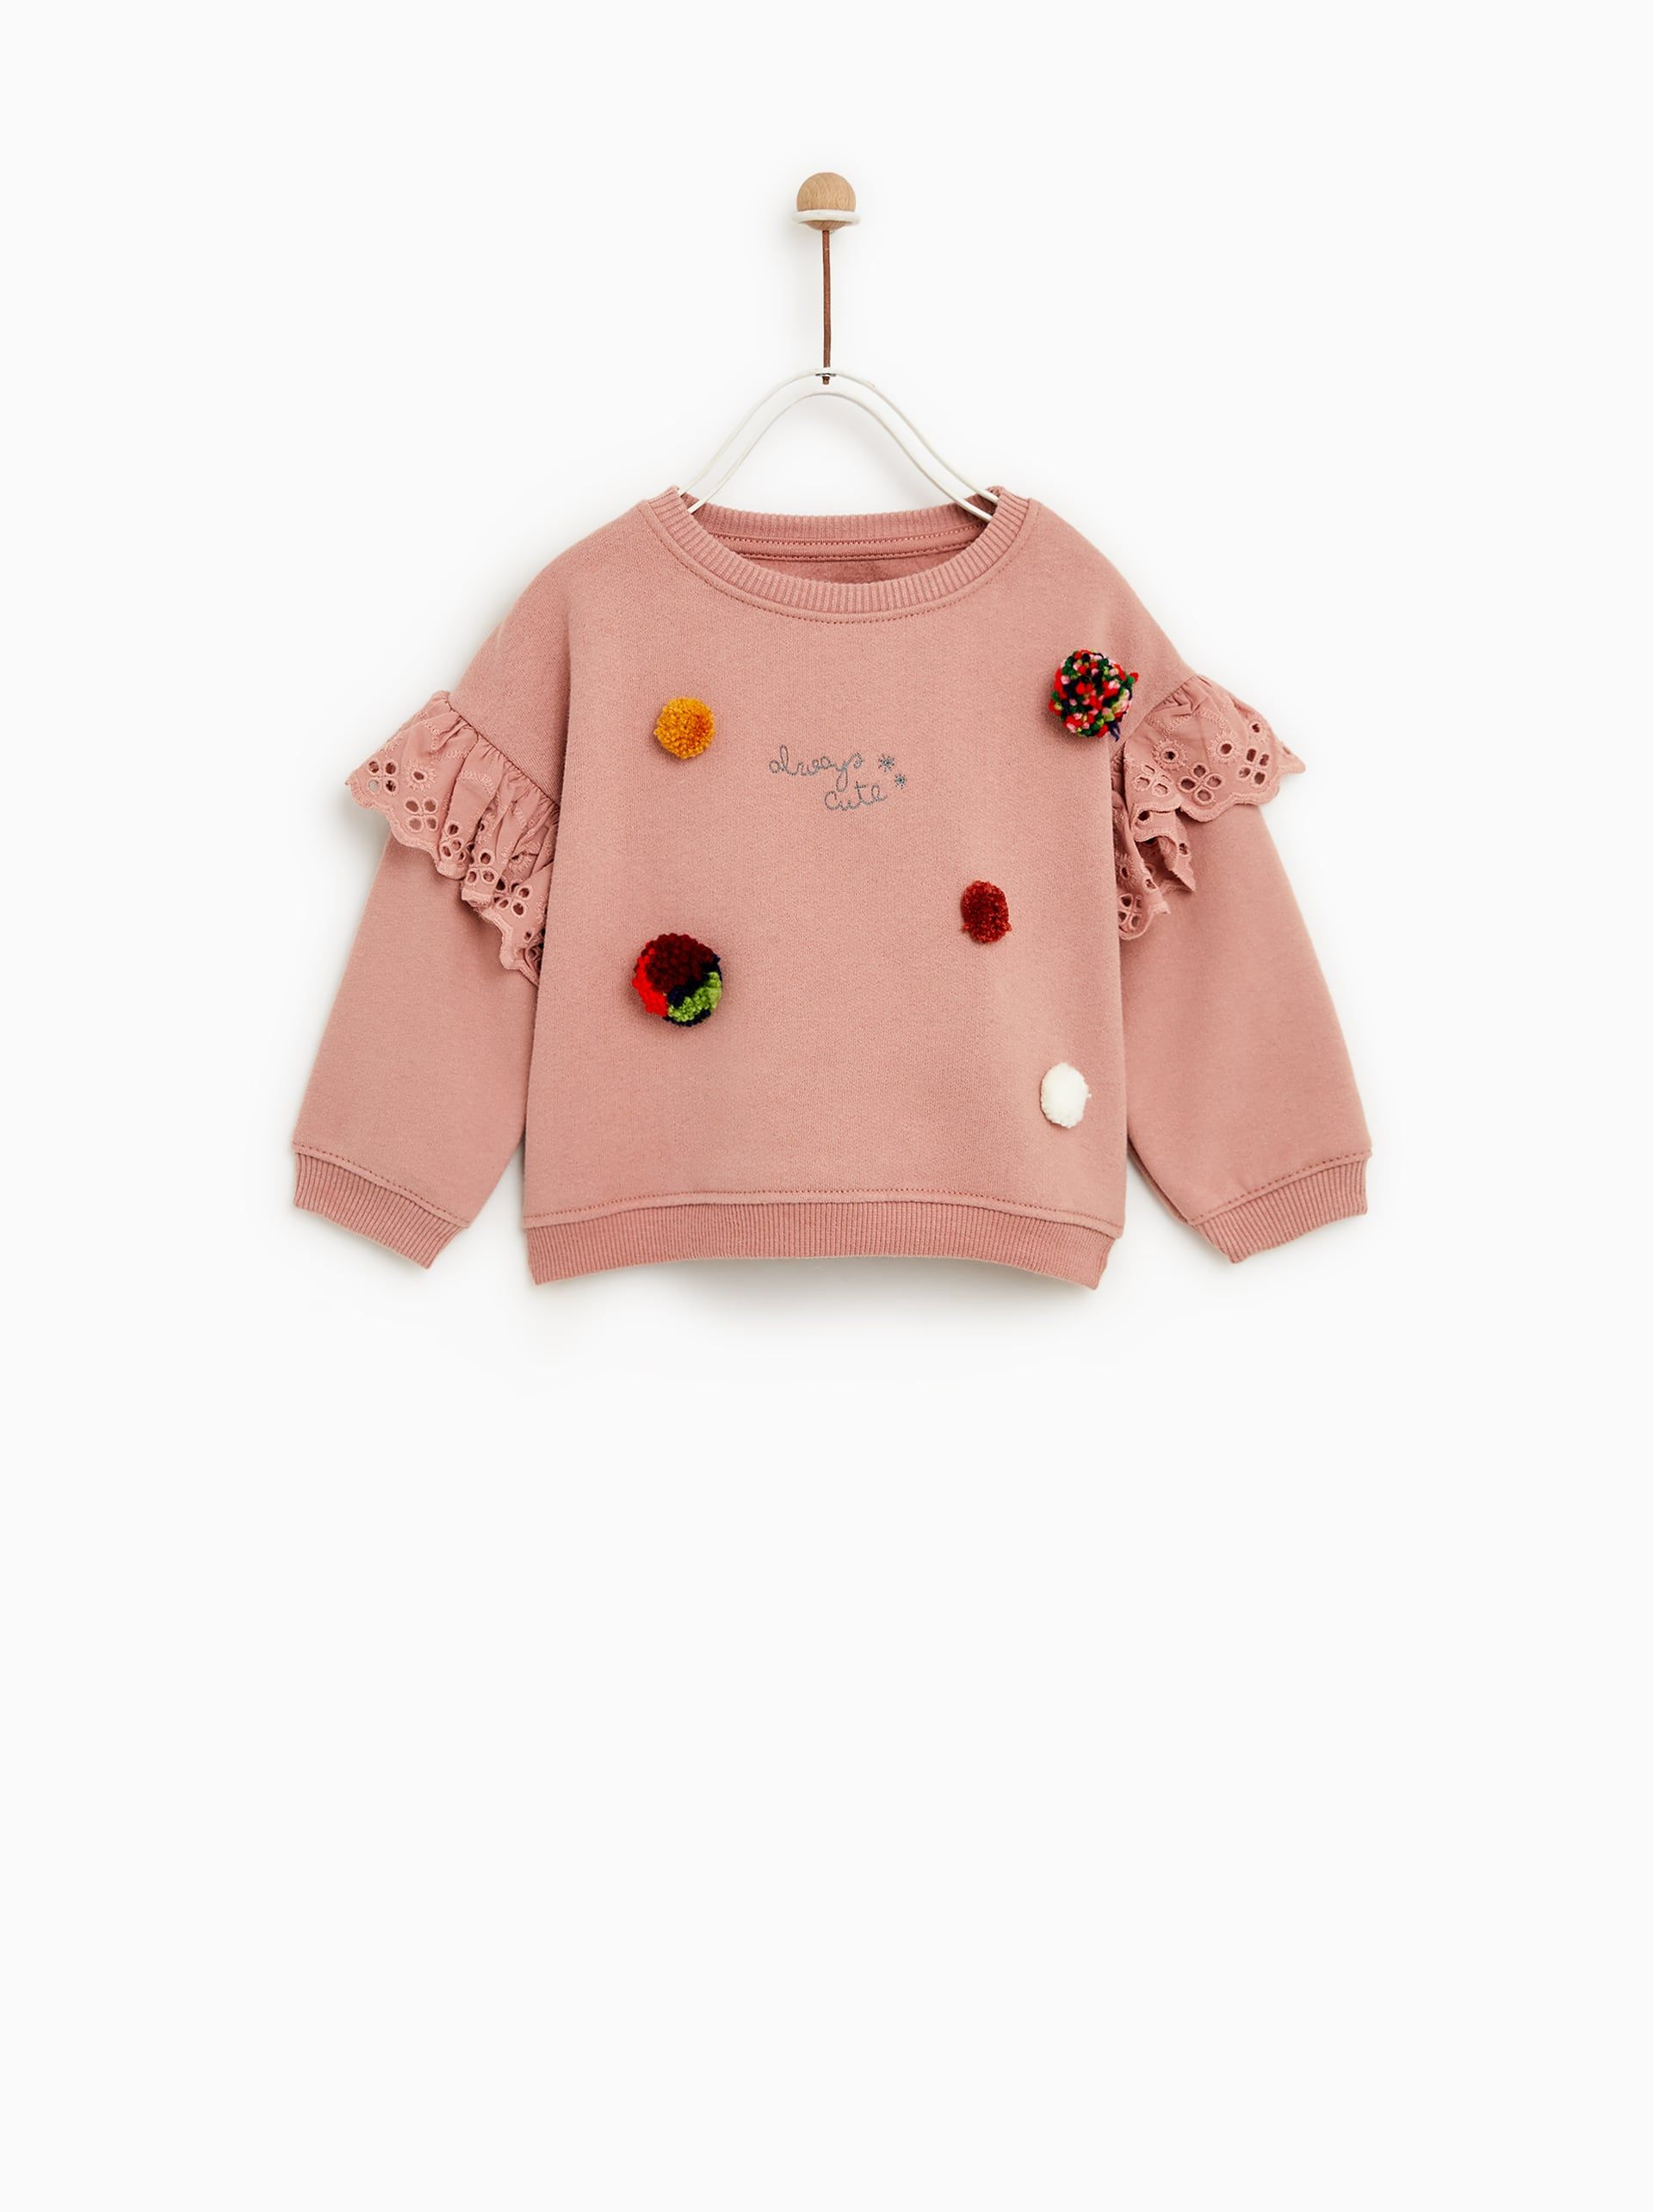 866d004c13 Image 1 of POMPOM SWEATSHIRT from Zara | bby clothes | Childrens ...